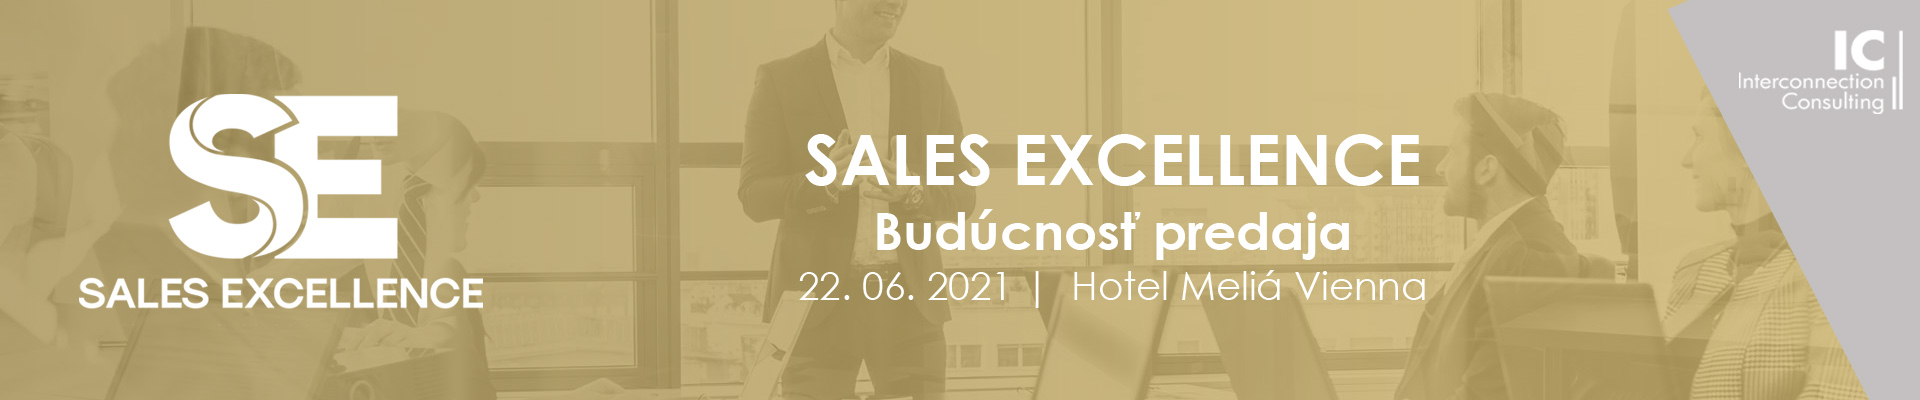 Sales Excellence 2021 Banner Homepage